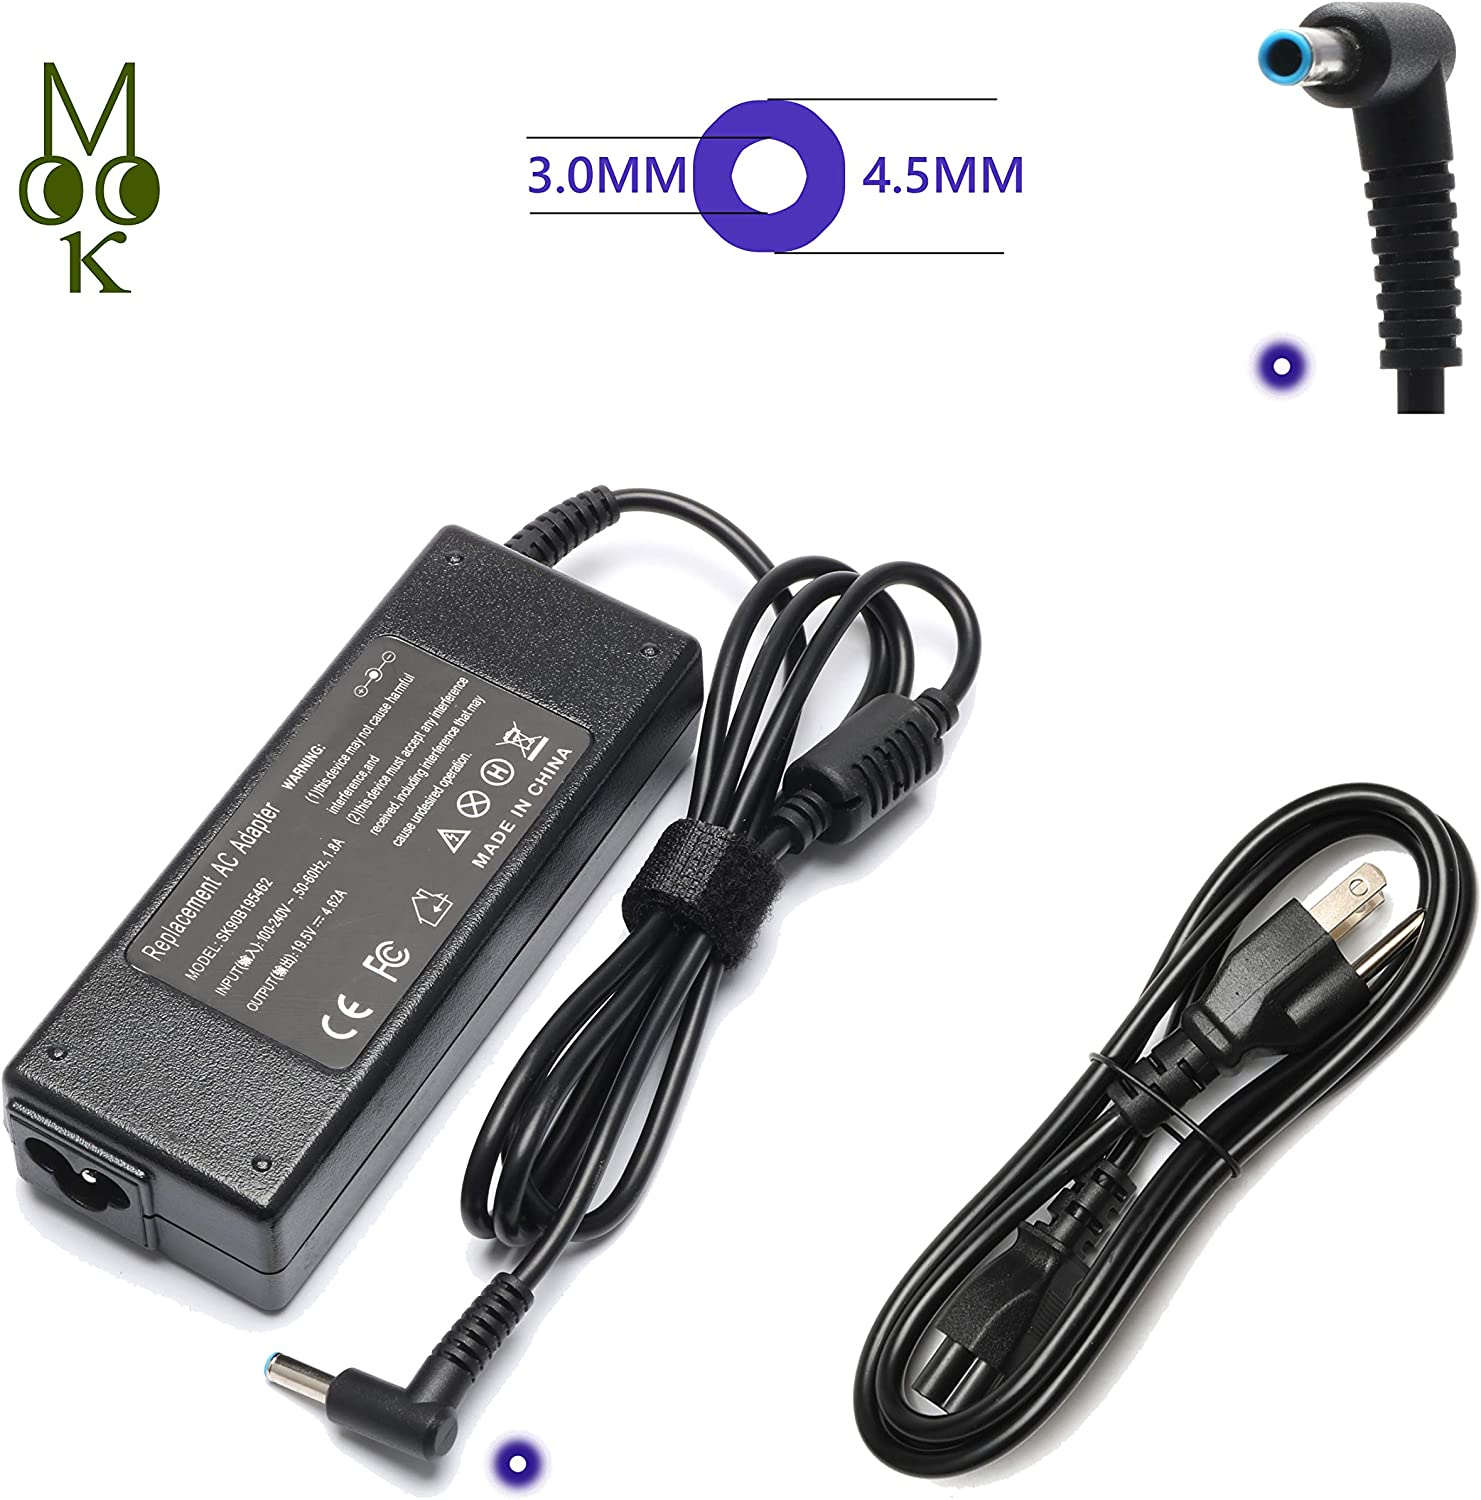 90W AC Adapter Laptop Charger for HP Pavilion 11 14 15 17 17-e119wm Envy Touchsmart Sleekbook 15 17 M6 M7 M6-k010dx M7-j020dx HP Spectre X360 13 15 HP EliteBook Folio 1040 Power Supply Cord 741727-001